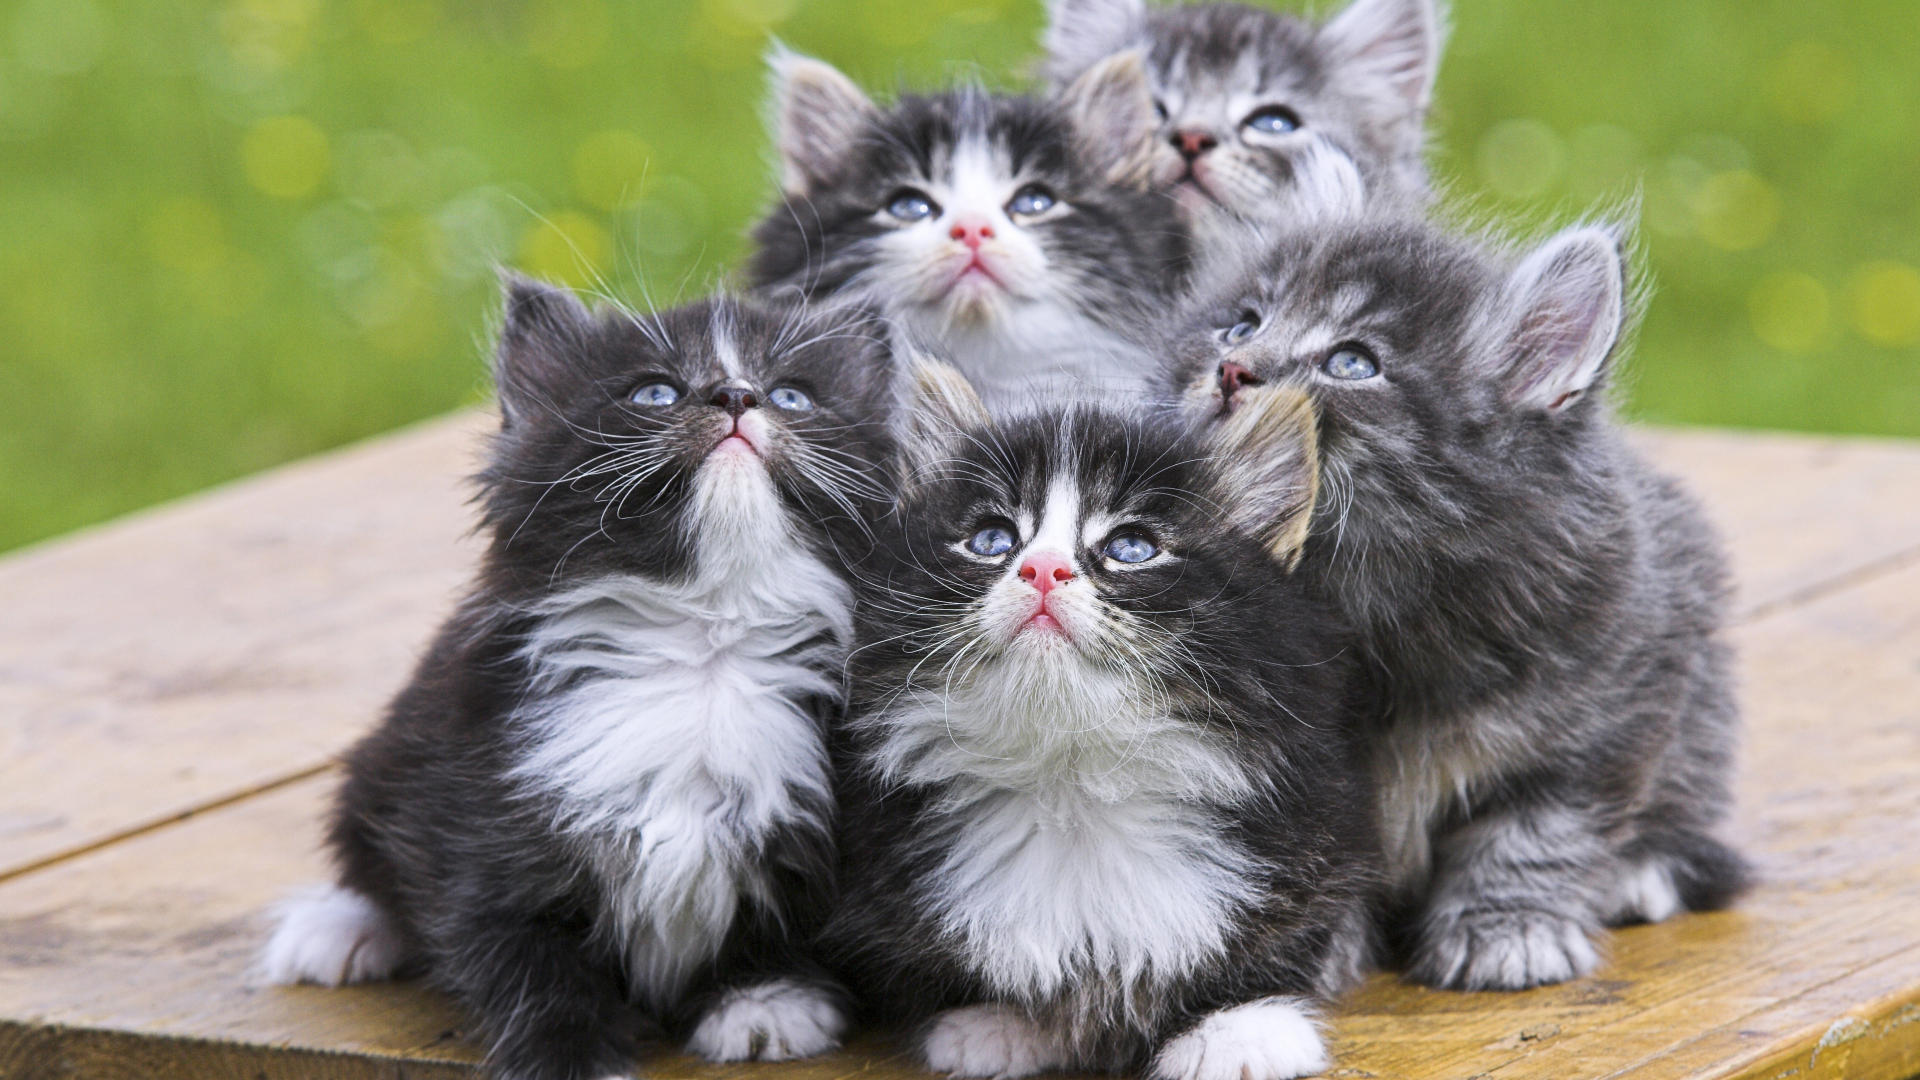 Cute Kittens   Babies Pets and Animals Wallpaper 16731287 1920x1080